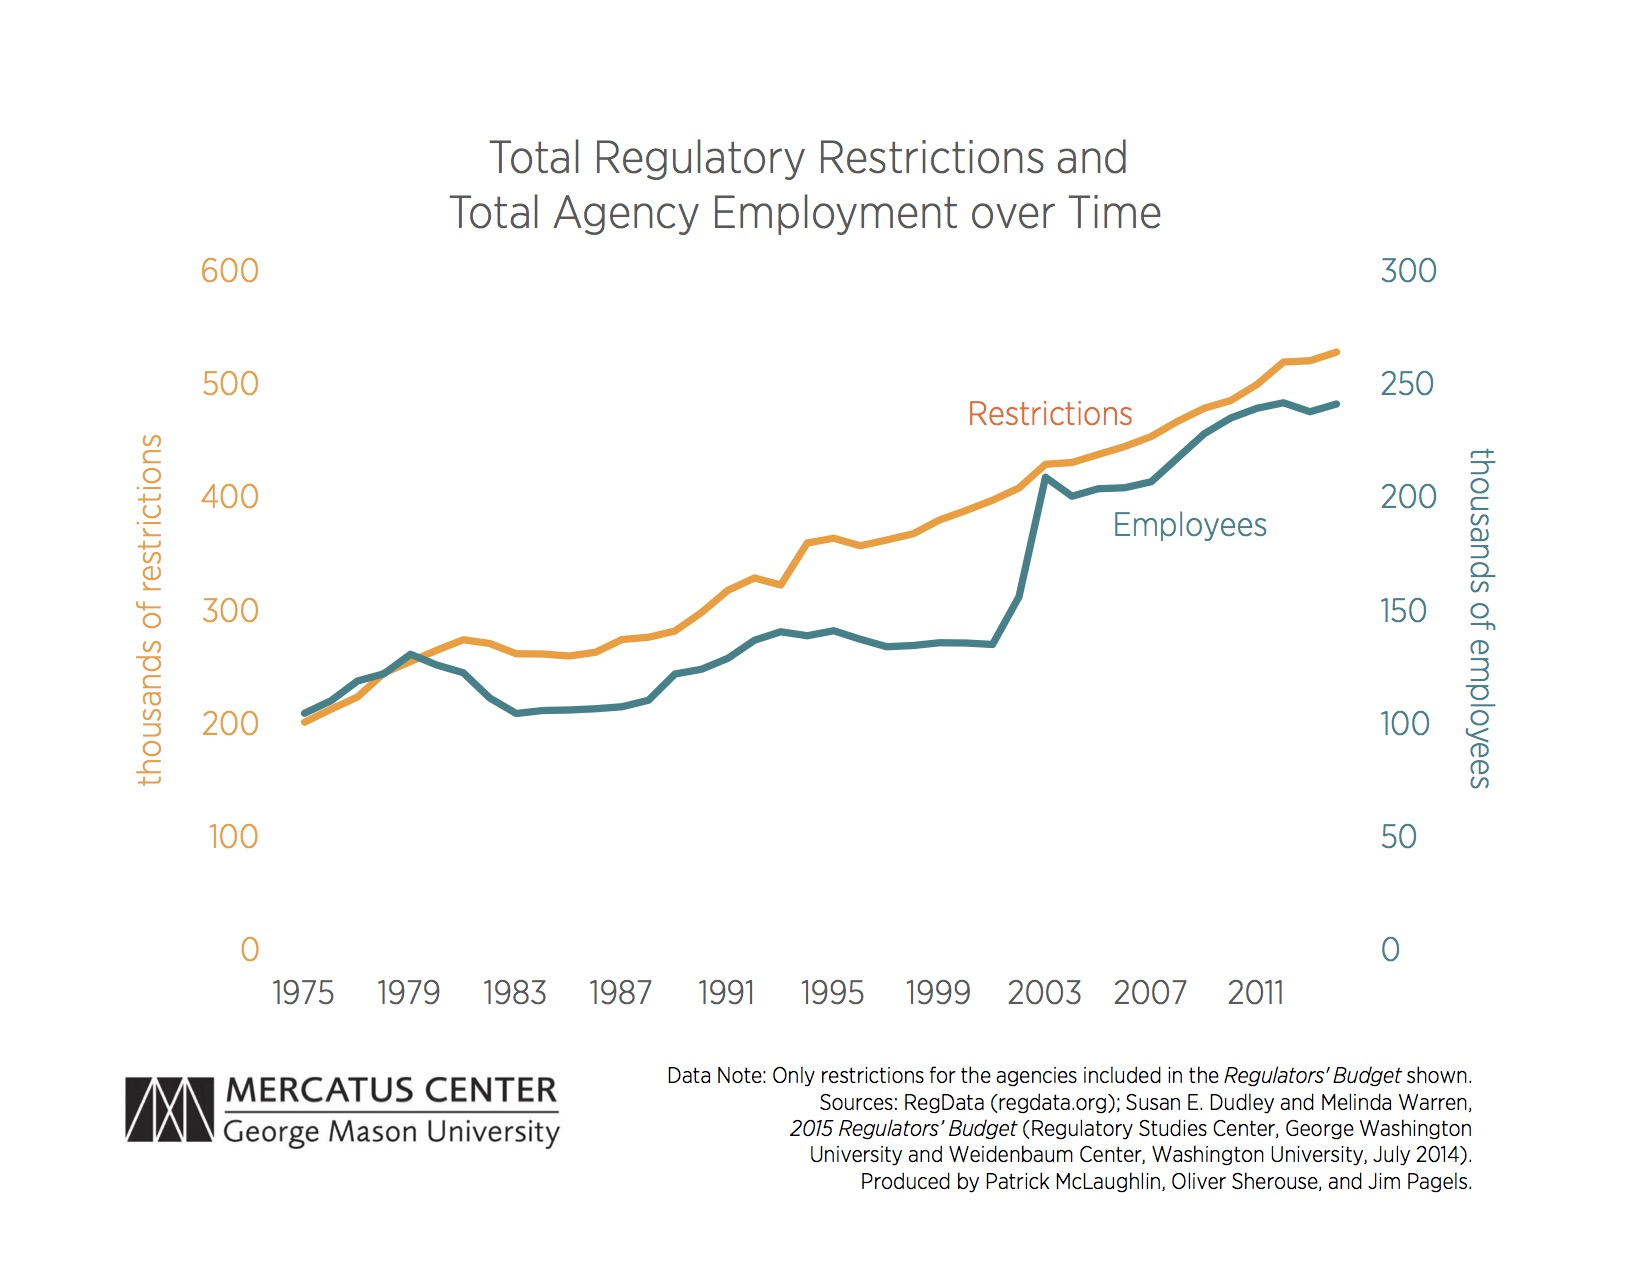 Total Regulatory Restrictions and Total Agency Employment over Time